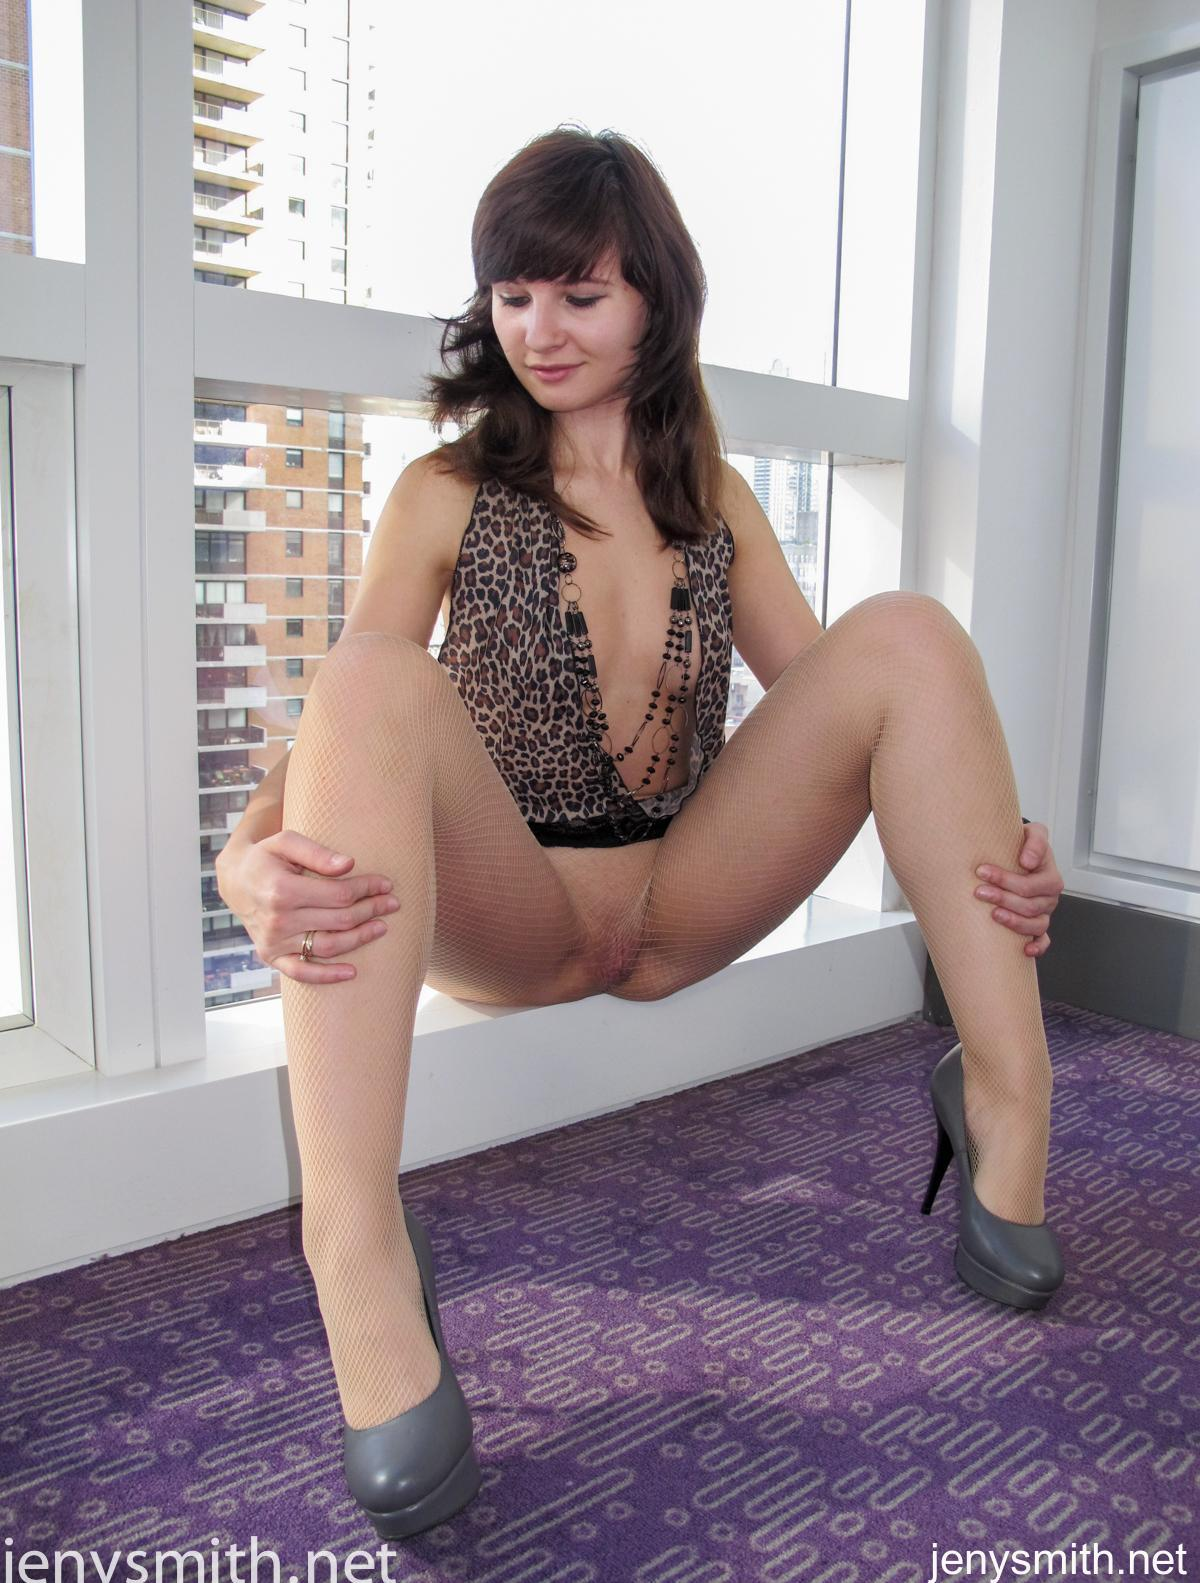 pretty mature lady jeny opens her legs to show her pretty mature twat to the public picture 9